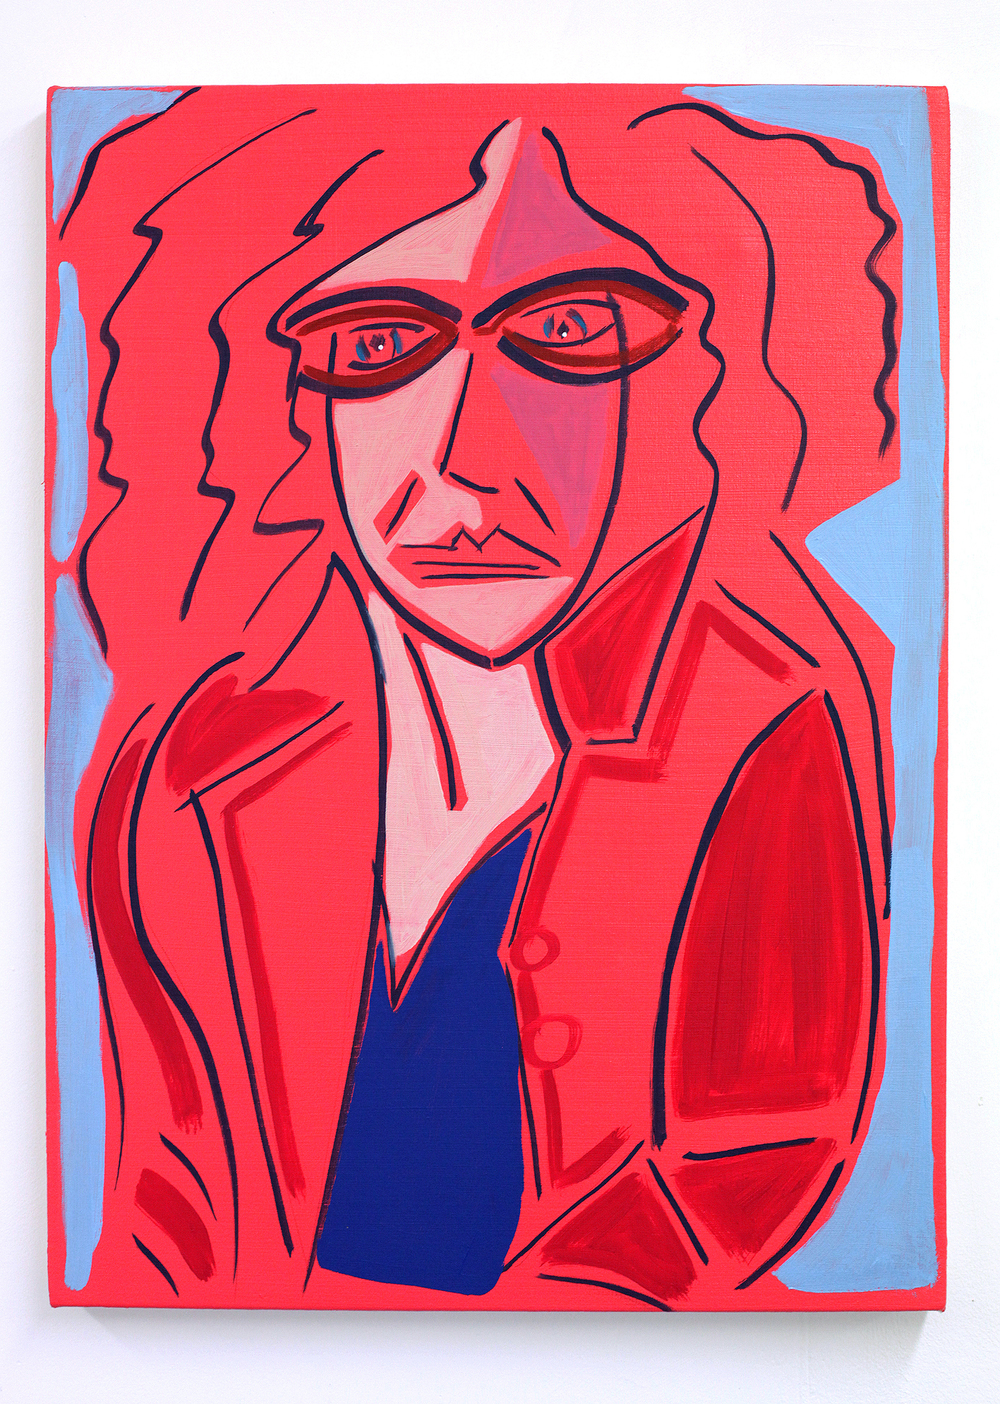 'Fraubraun (with red felt jacket from the Italian market)', 2015/17, oil on canvas, 30 x 40 cm